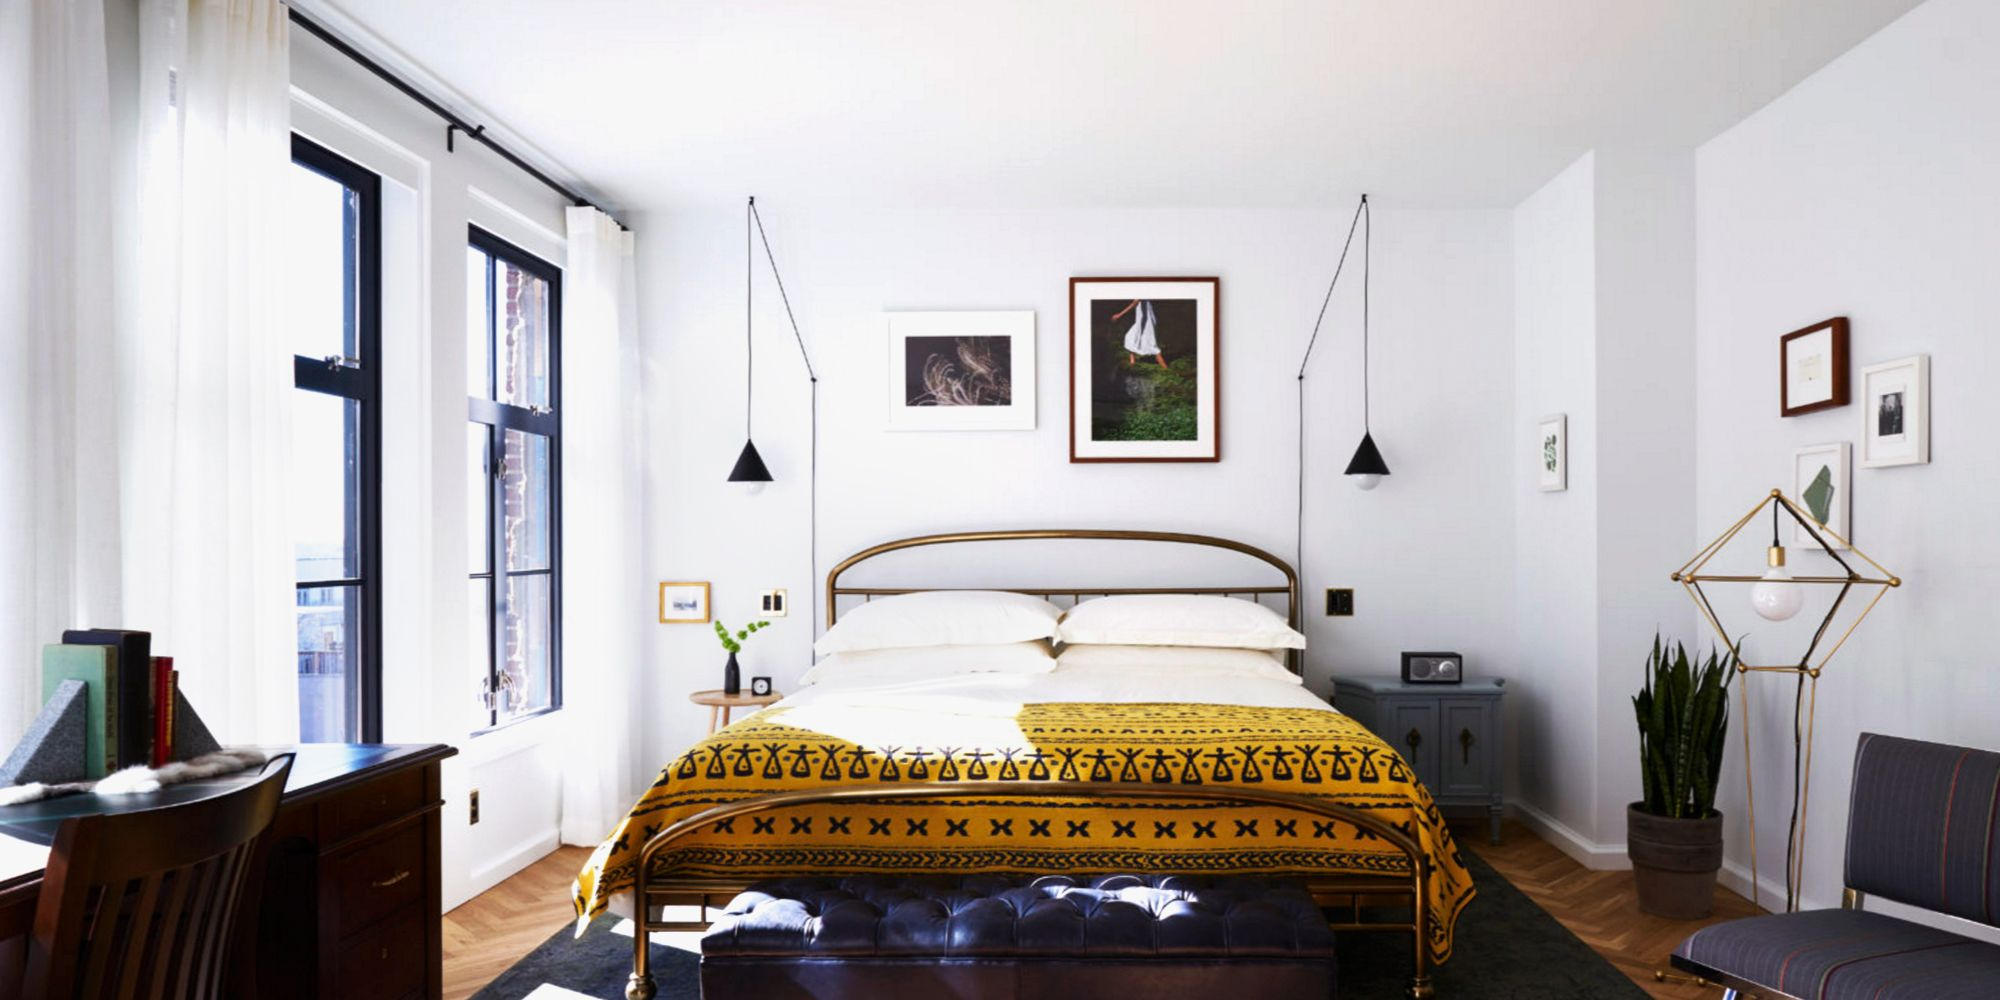 25 Best Boutique Hotels in the US - Boutique Hotels to Book a Stay ...